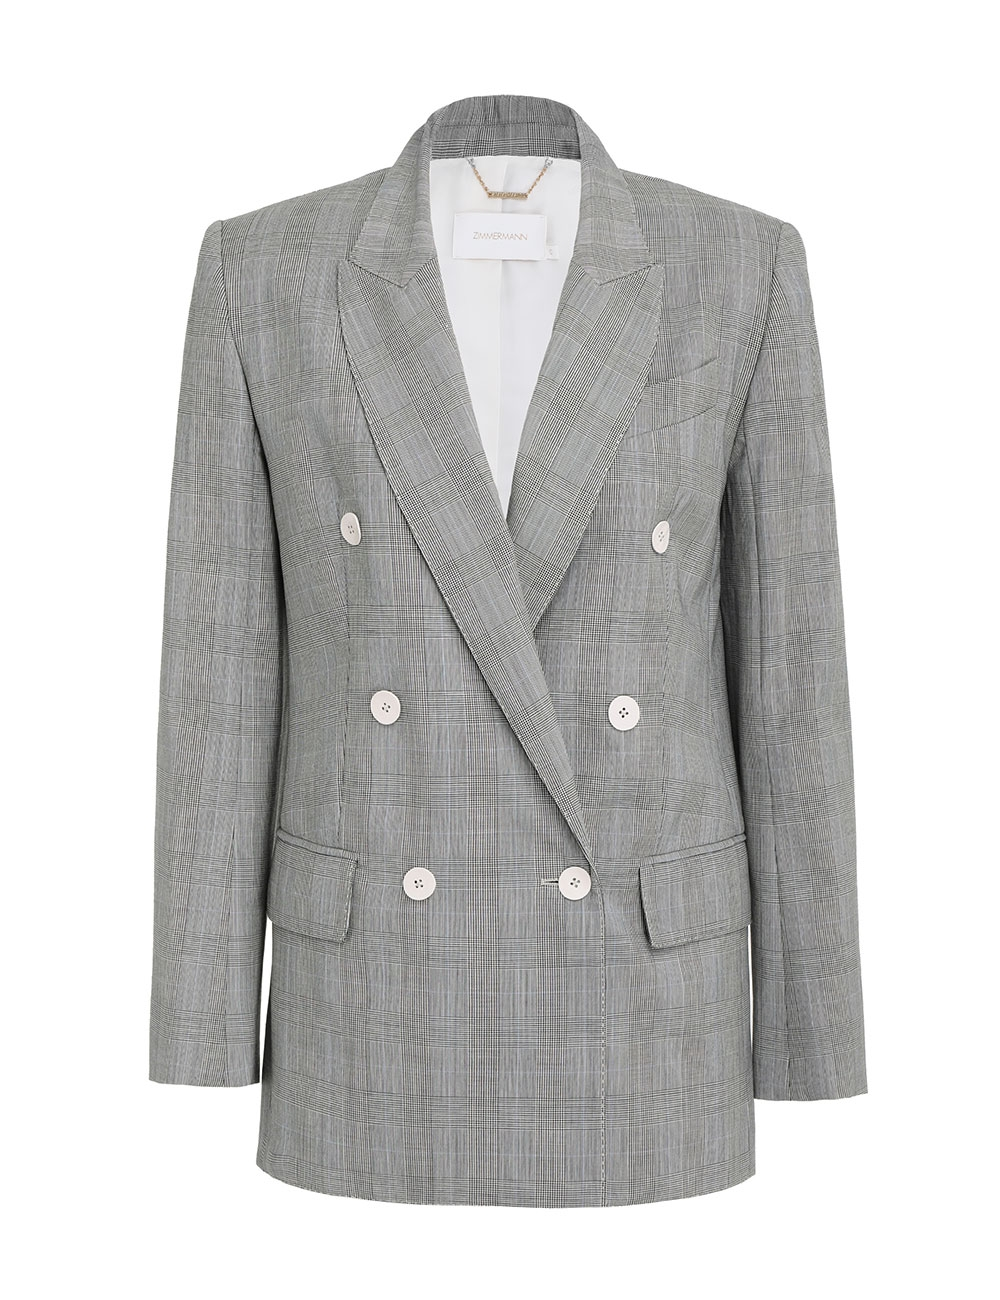 Luminous Check Jacket